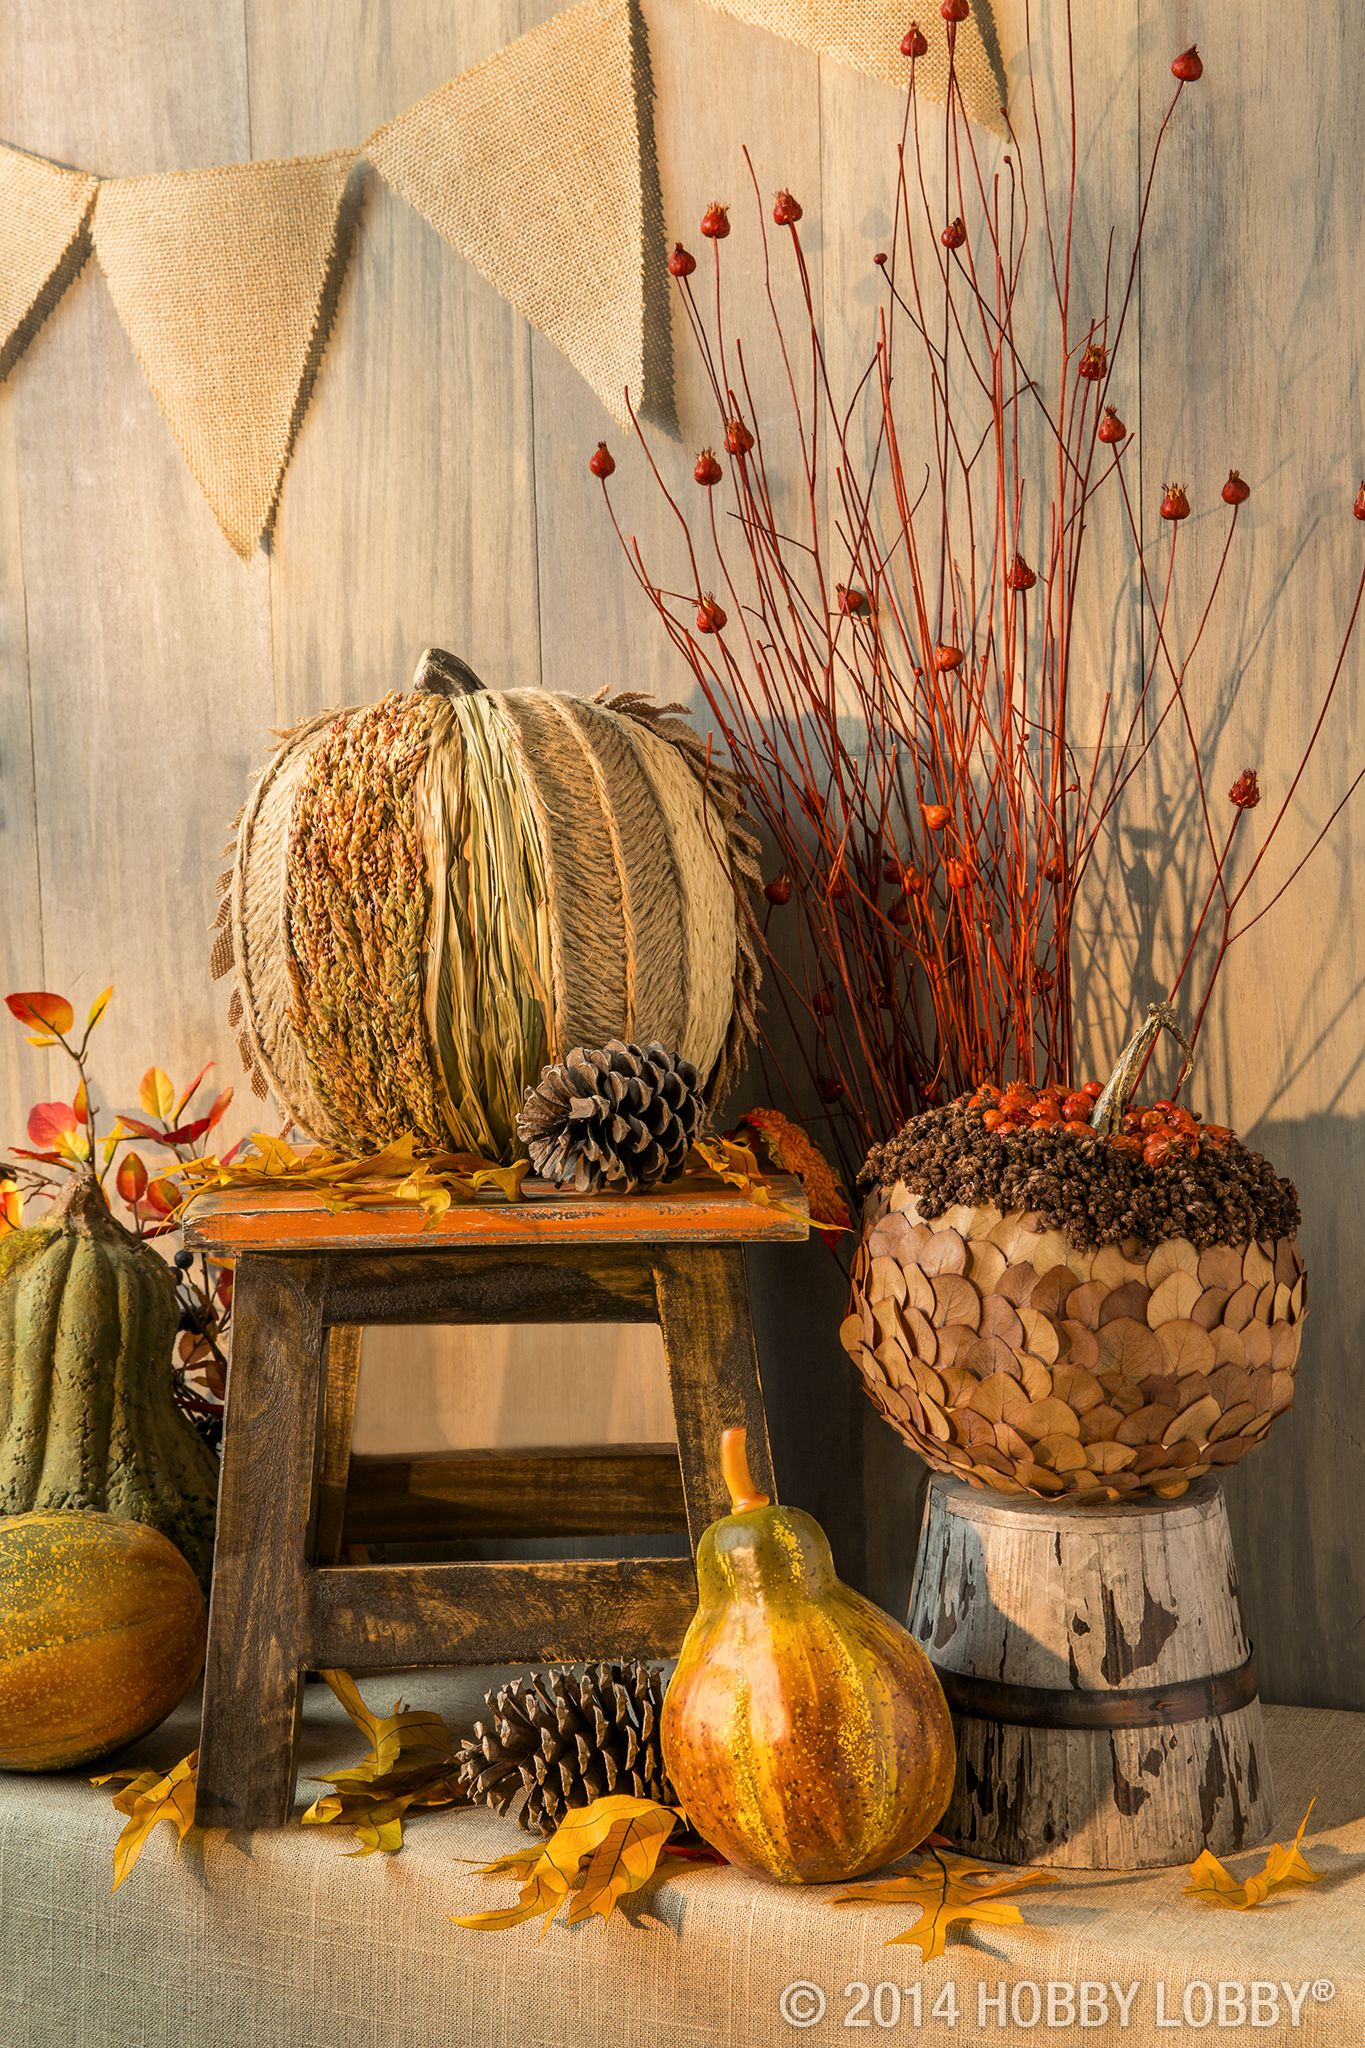 Looking for last minute autumn decor ideas? Be inspired by our - Hobby Lobby Halloween Decorations